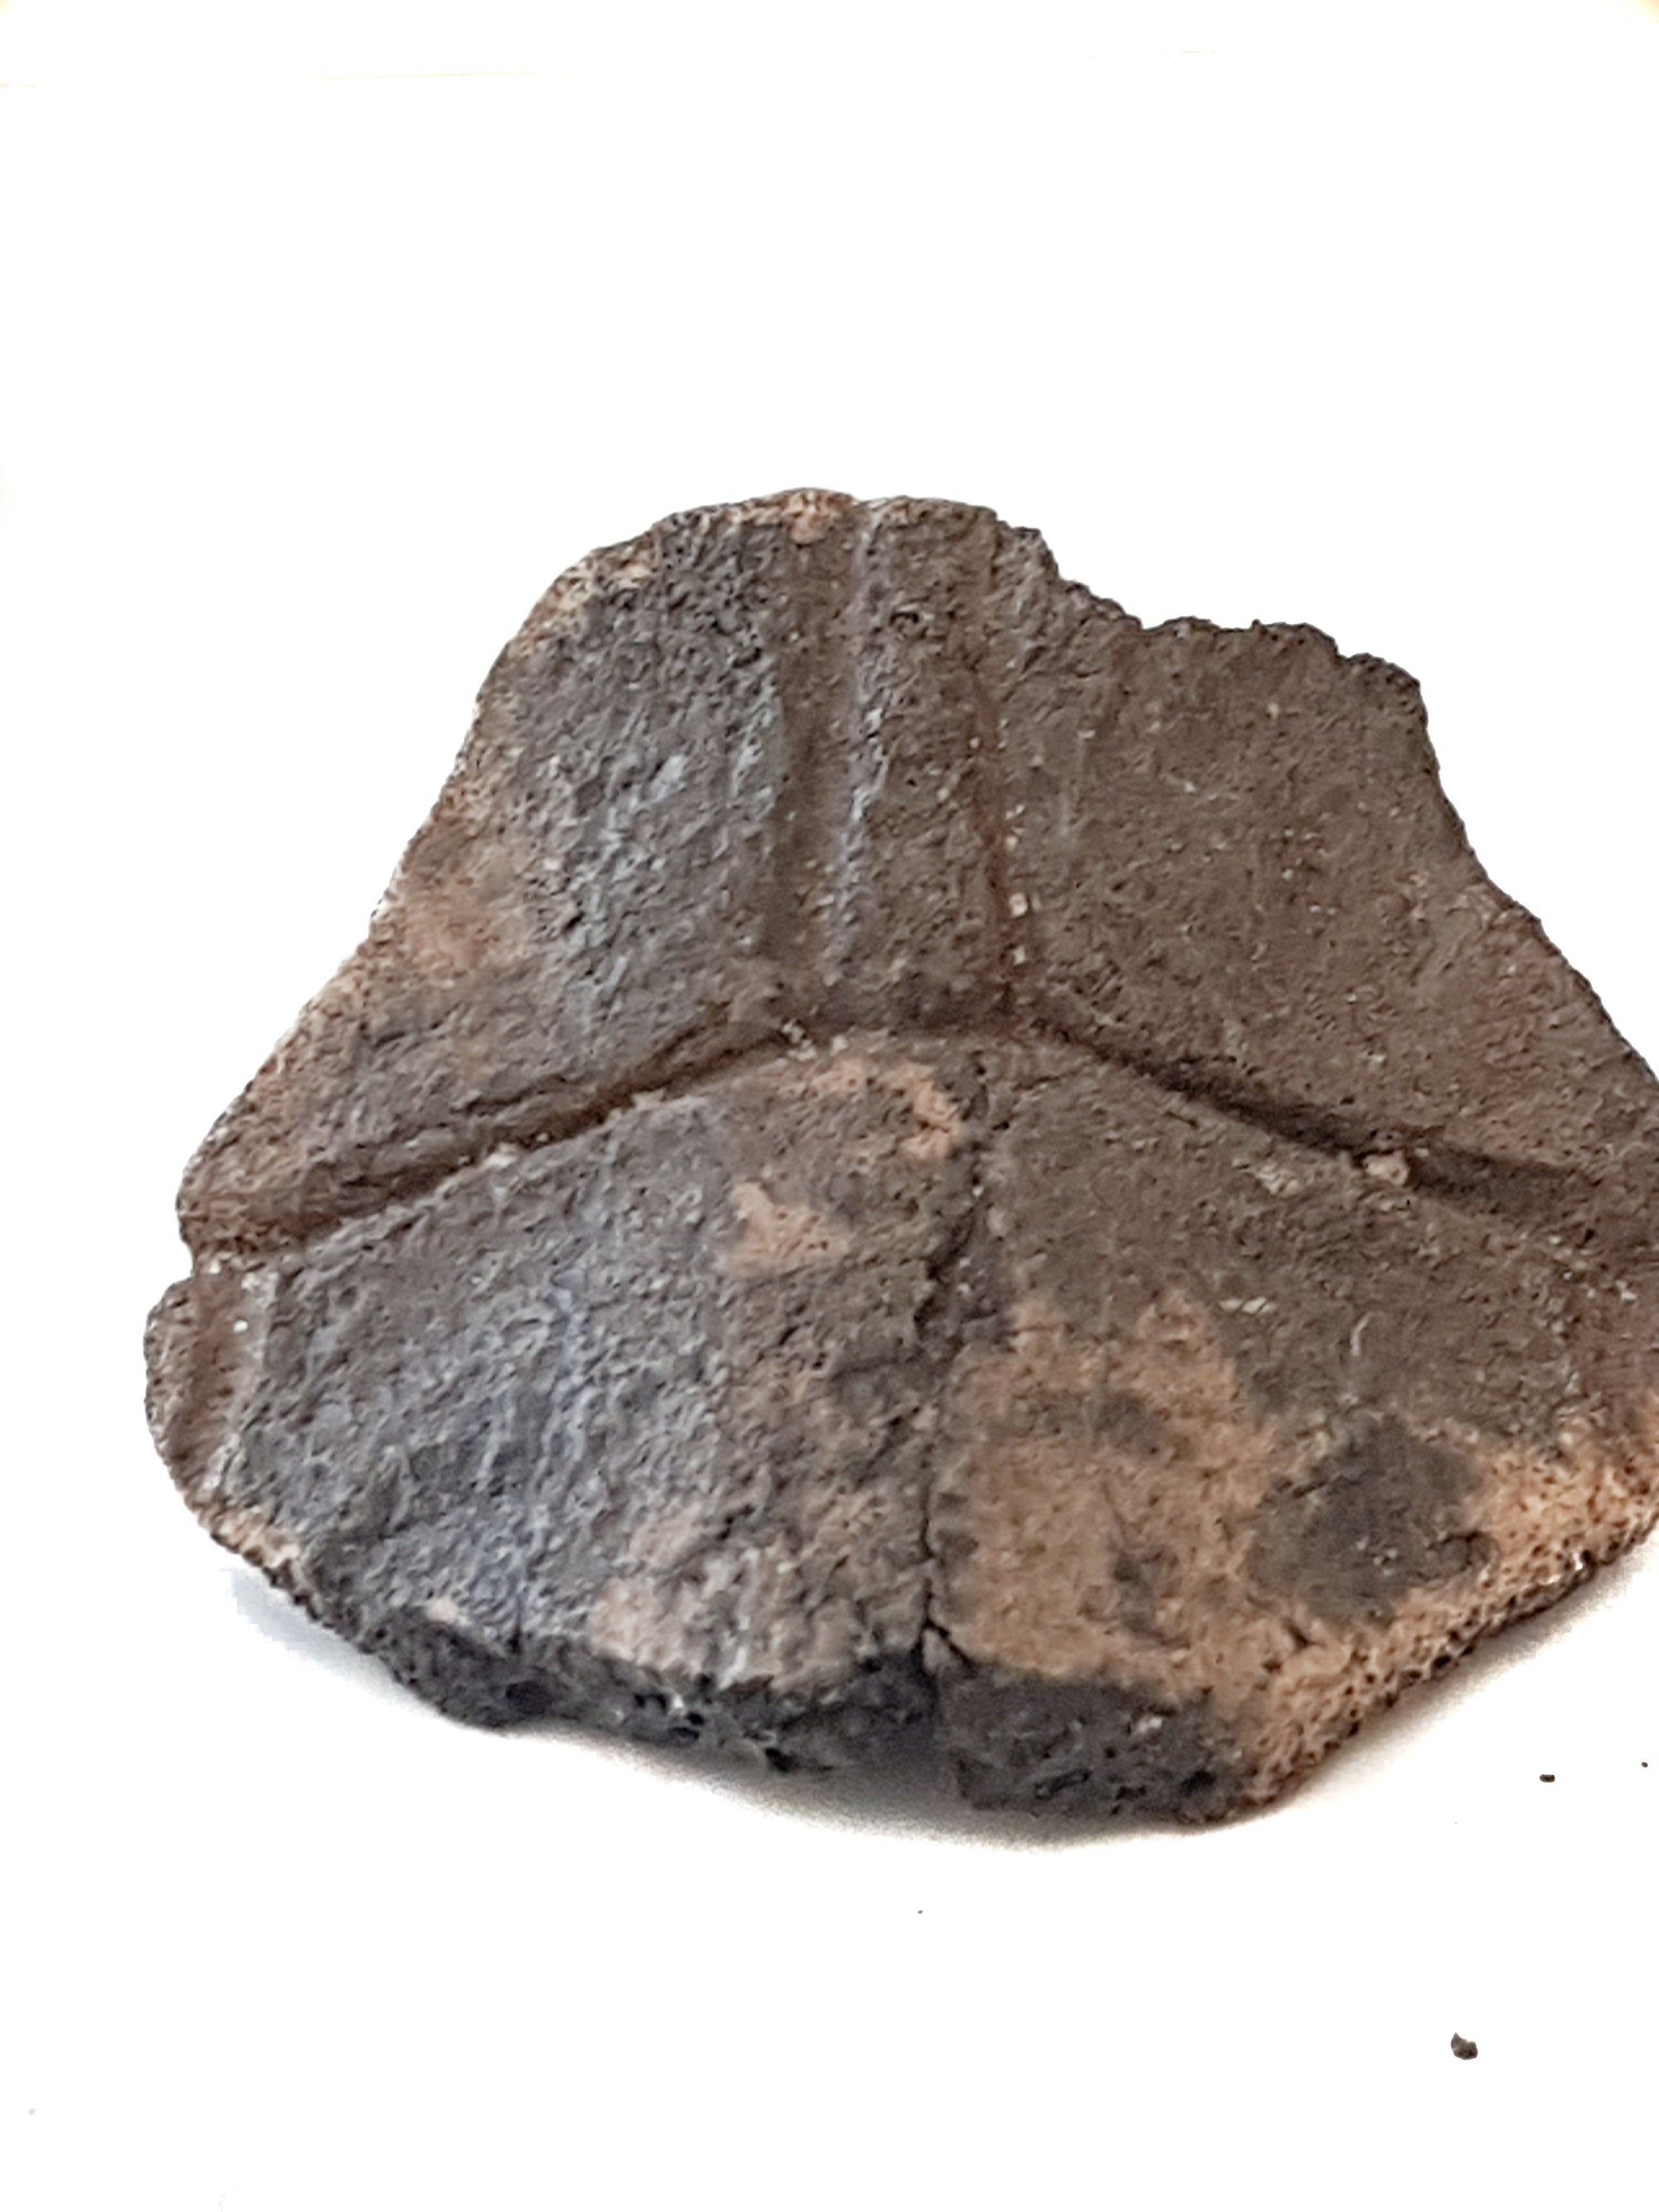 fragment of fossil turtle shell